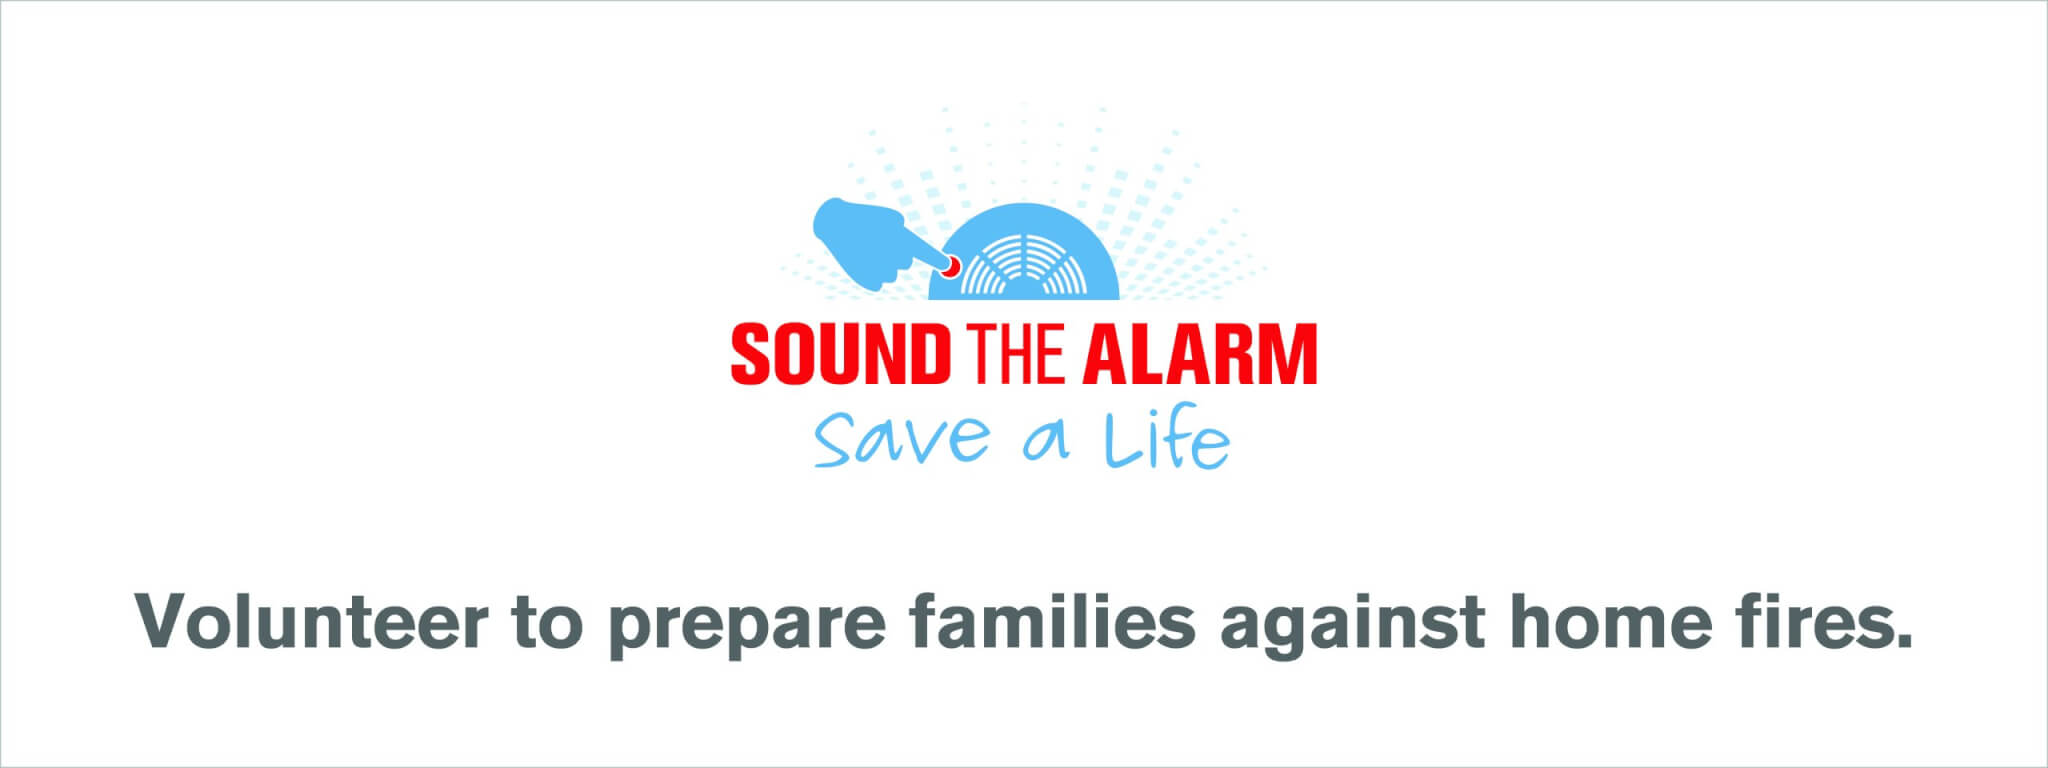 Sound the Alarm Event